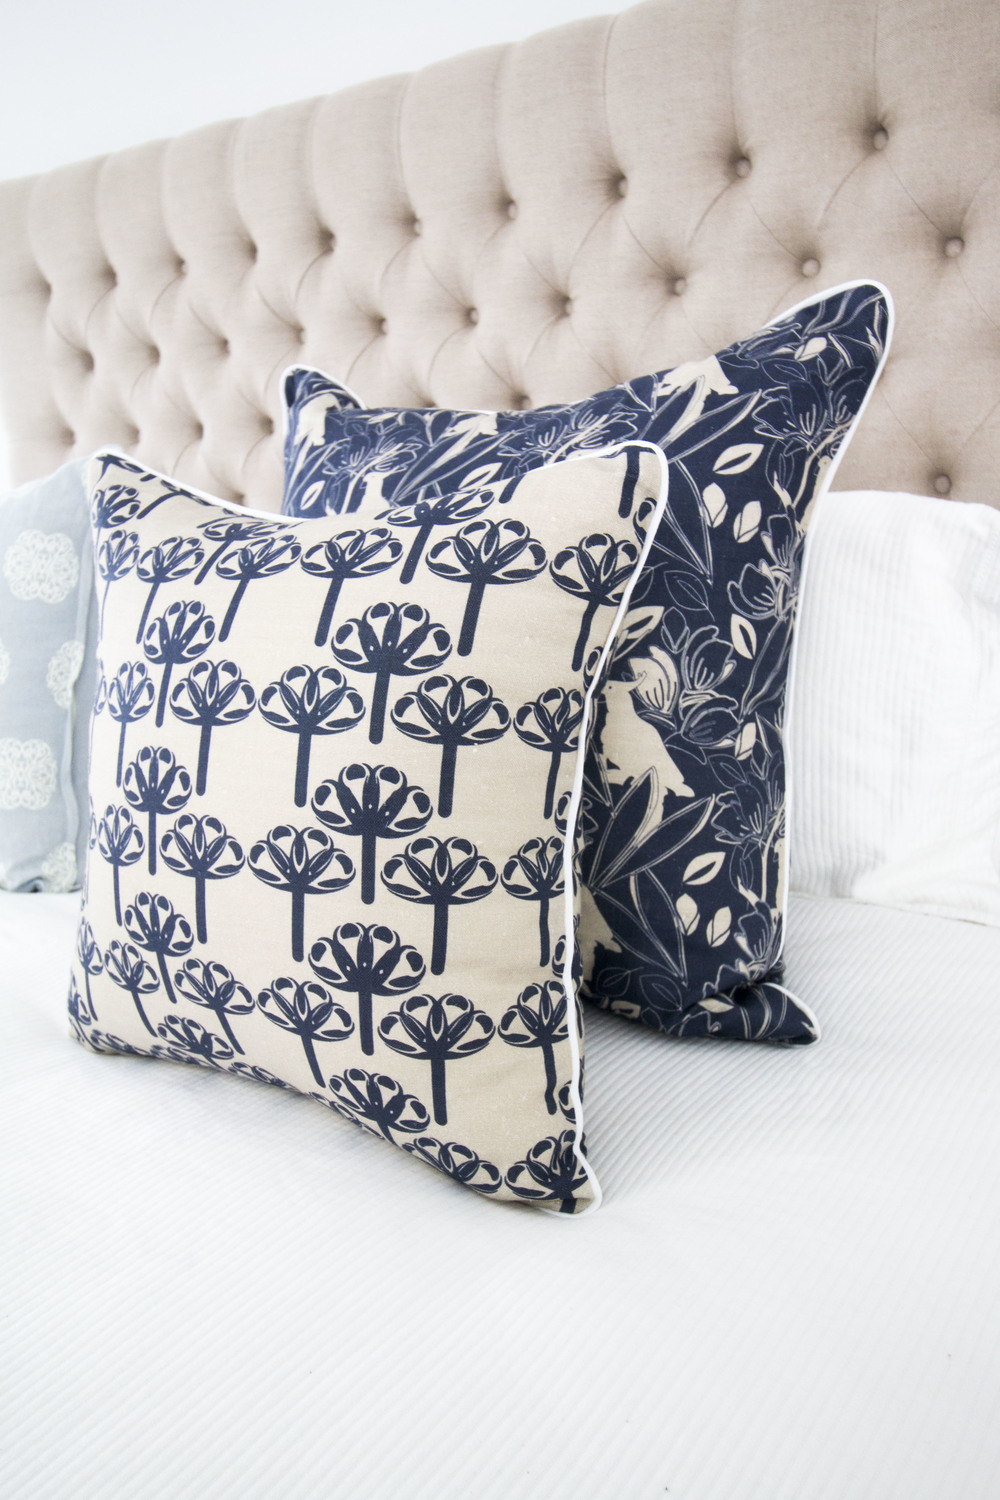 Product Photography & Styling   Cushions -  Lee & Allan Design   Private Residence - Casuarina, NSW